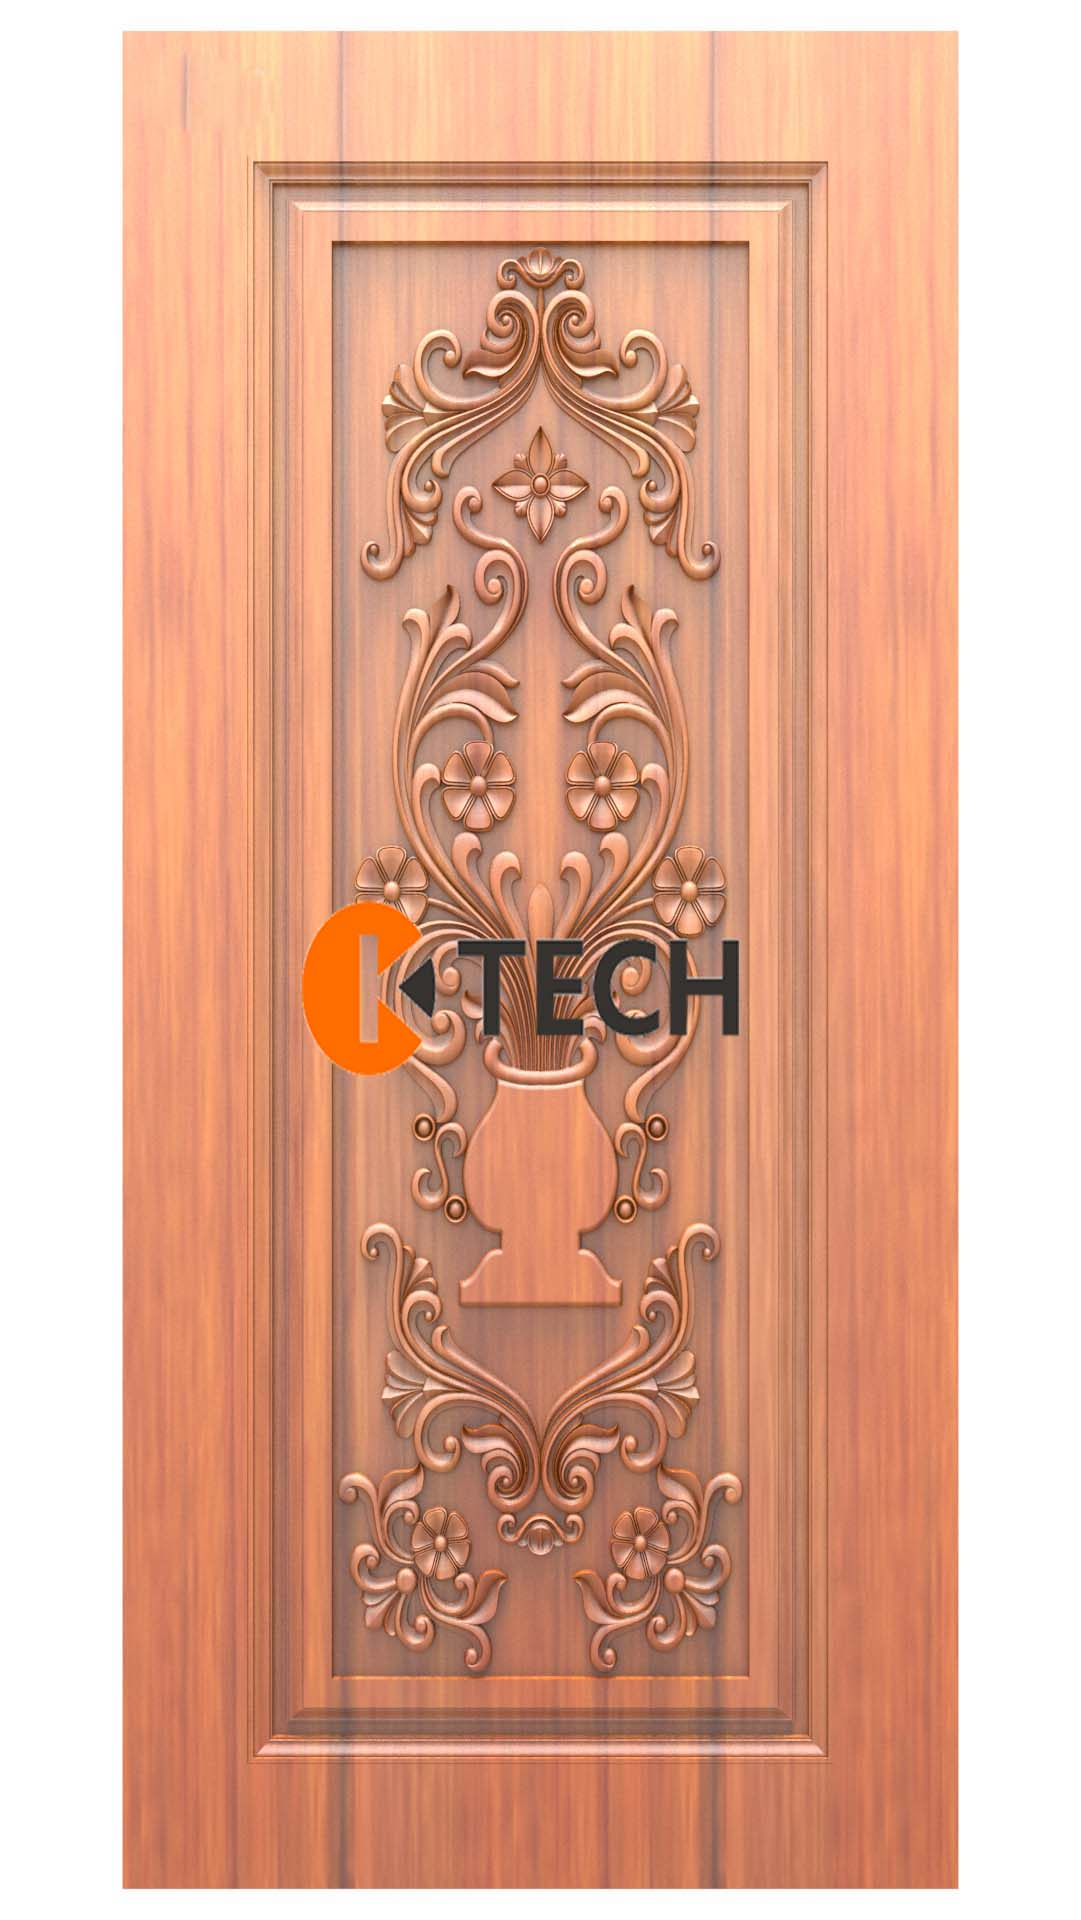 K-TECH CNC Doors Design 80